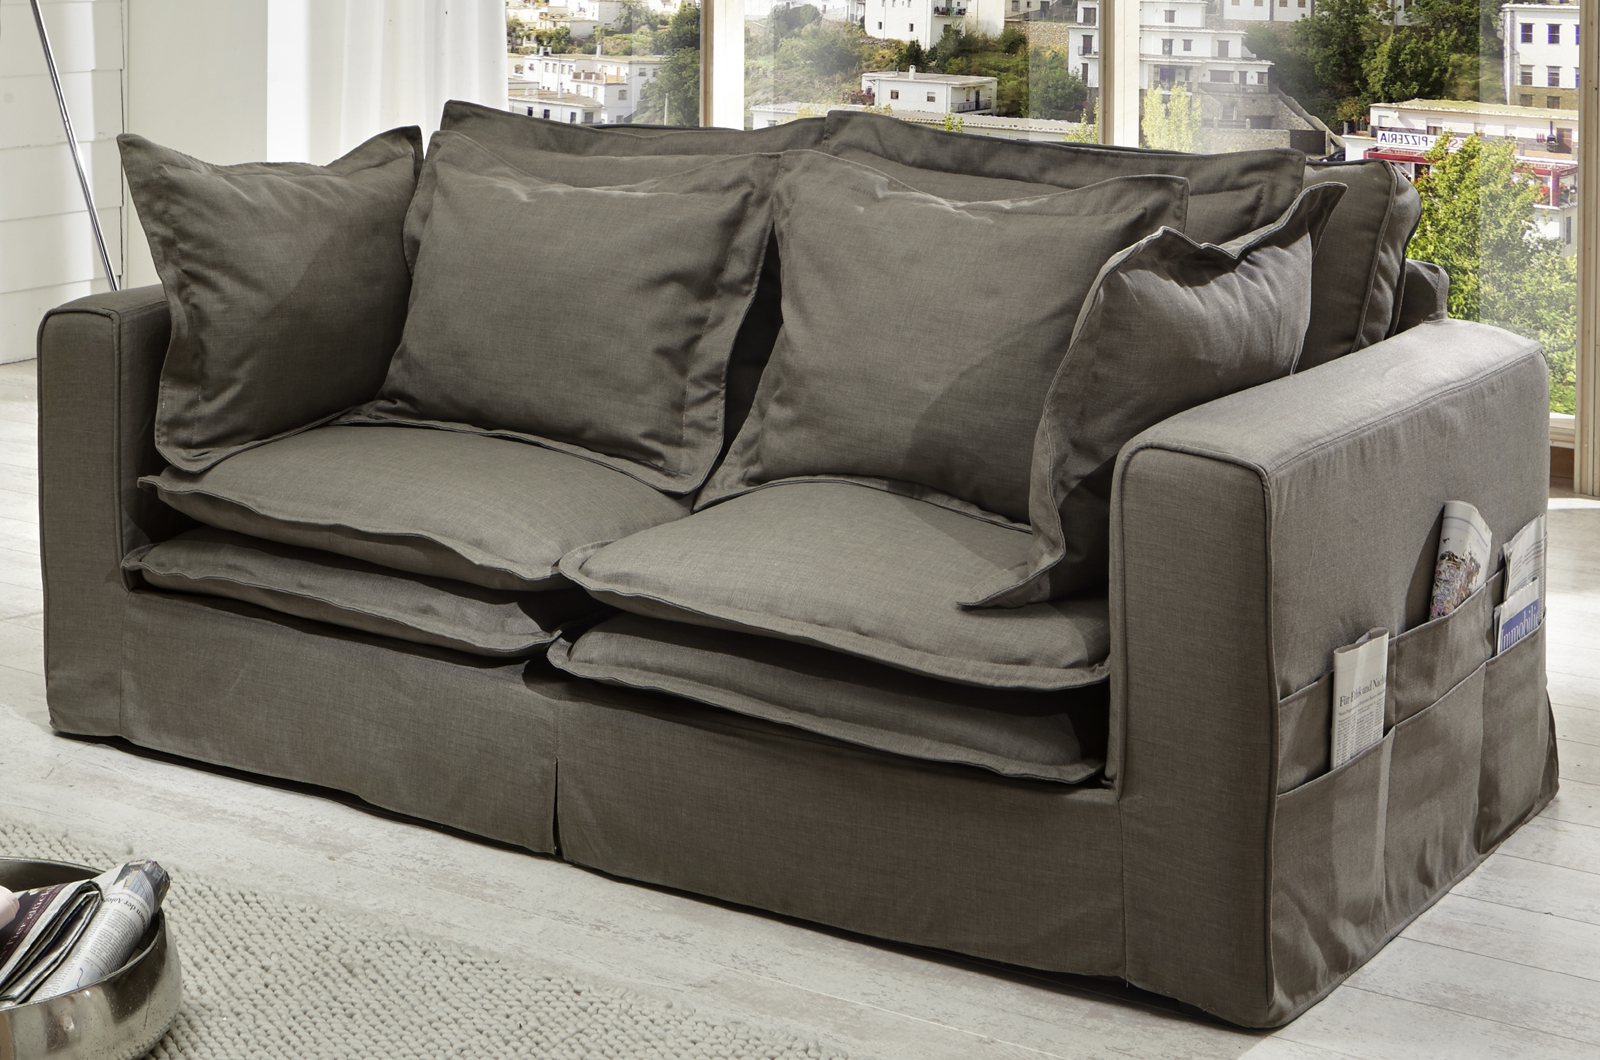 sam design hussensofa braun 2 sitzer nora g nstig. Black Bedroom Furniture Sets. Home Design Ideas